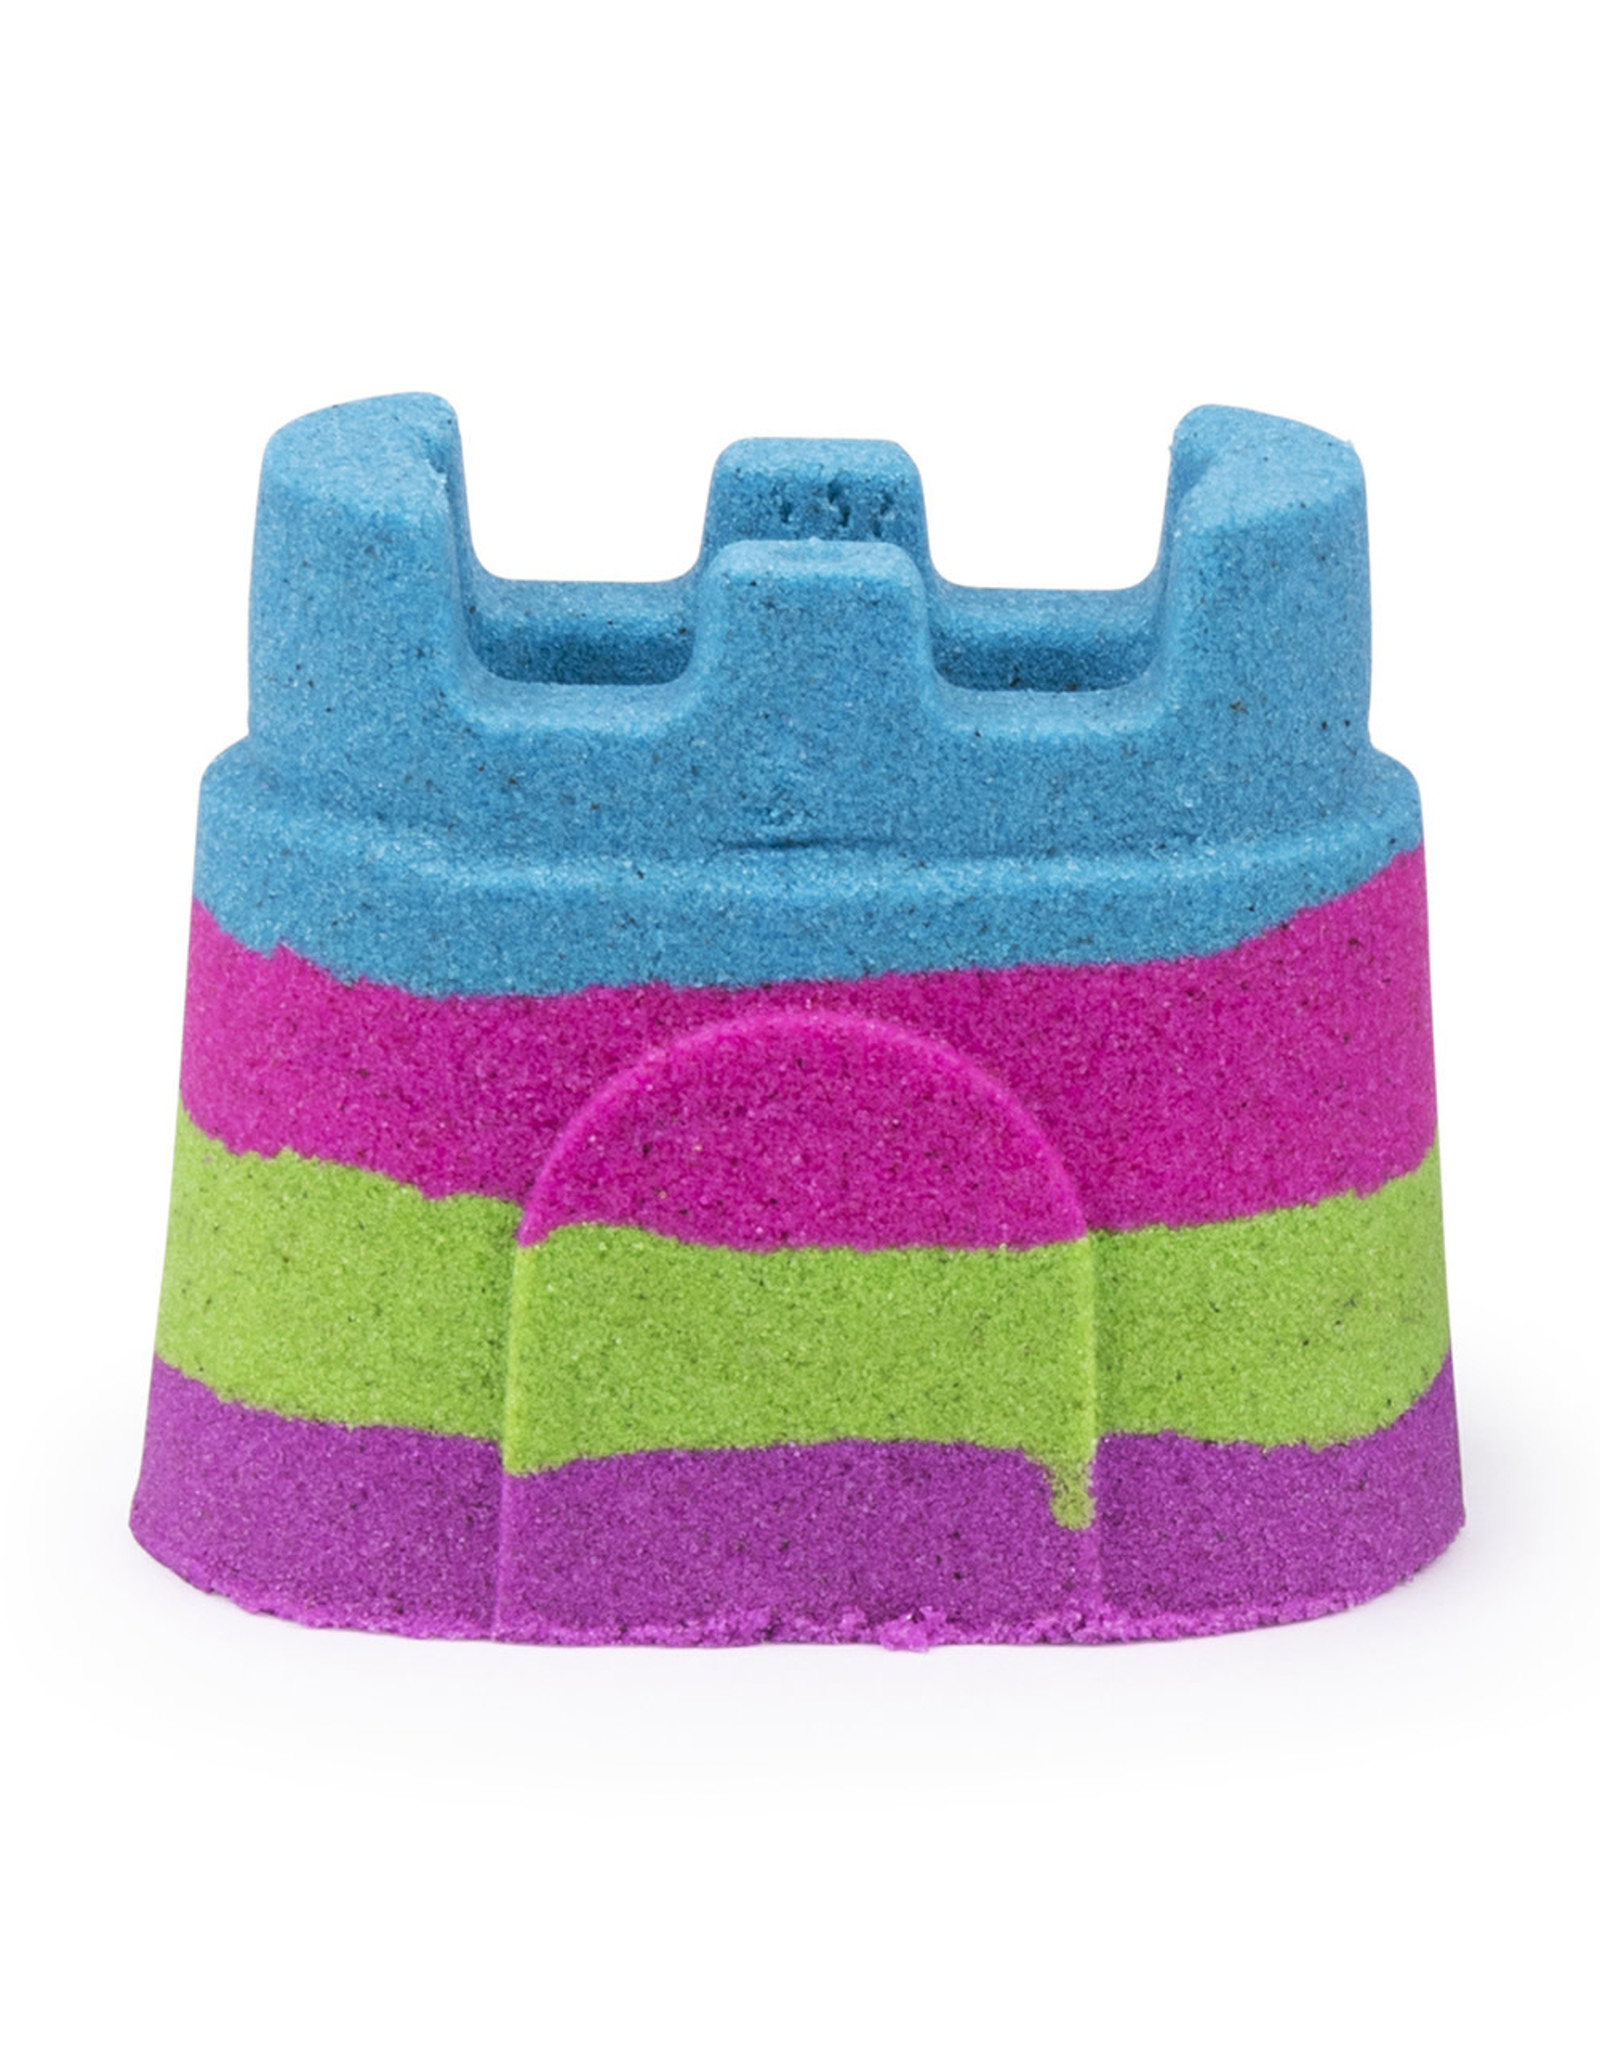 Kinetic Sand Rainbow Castle